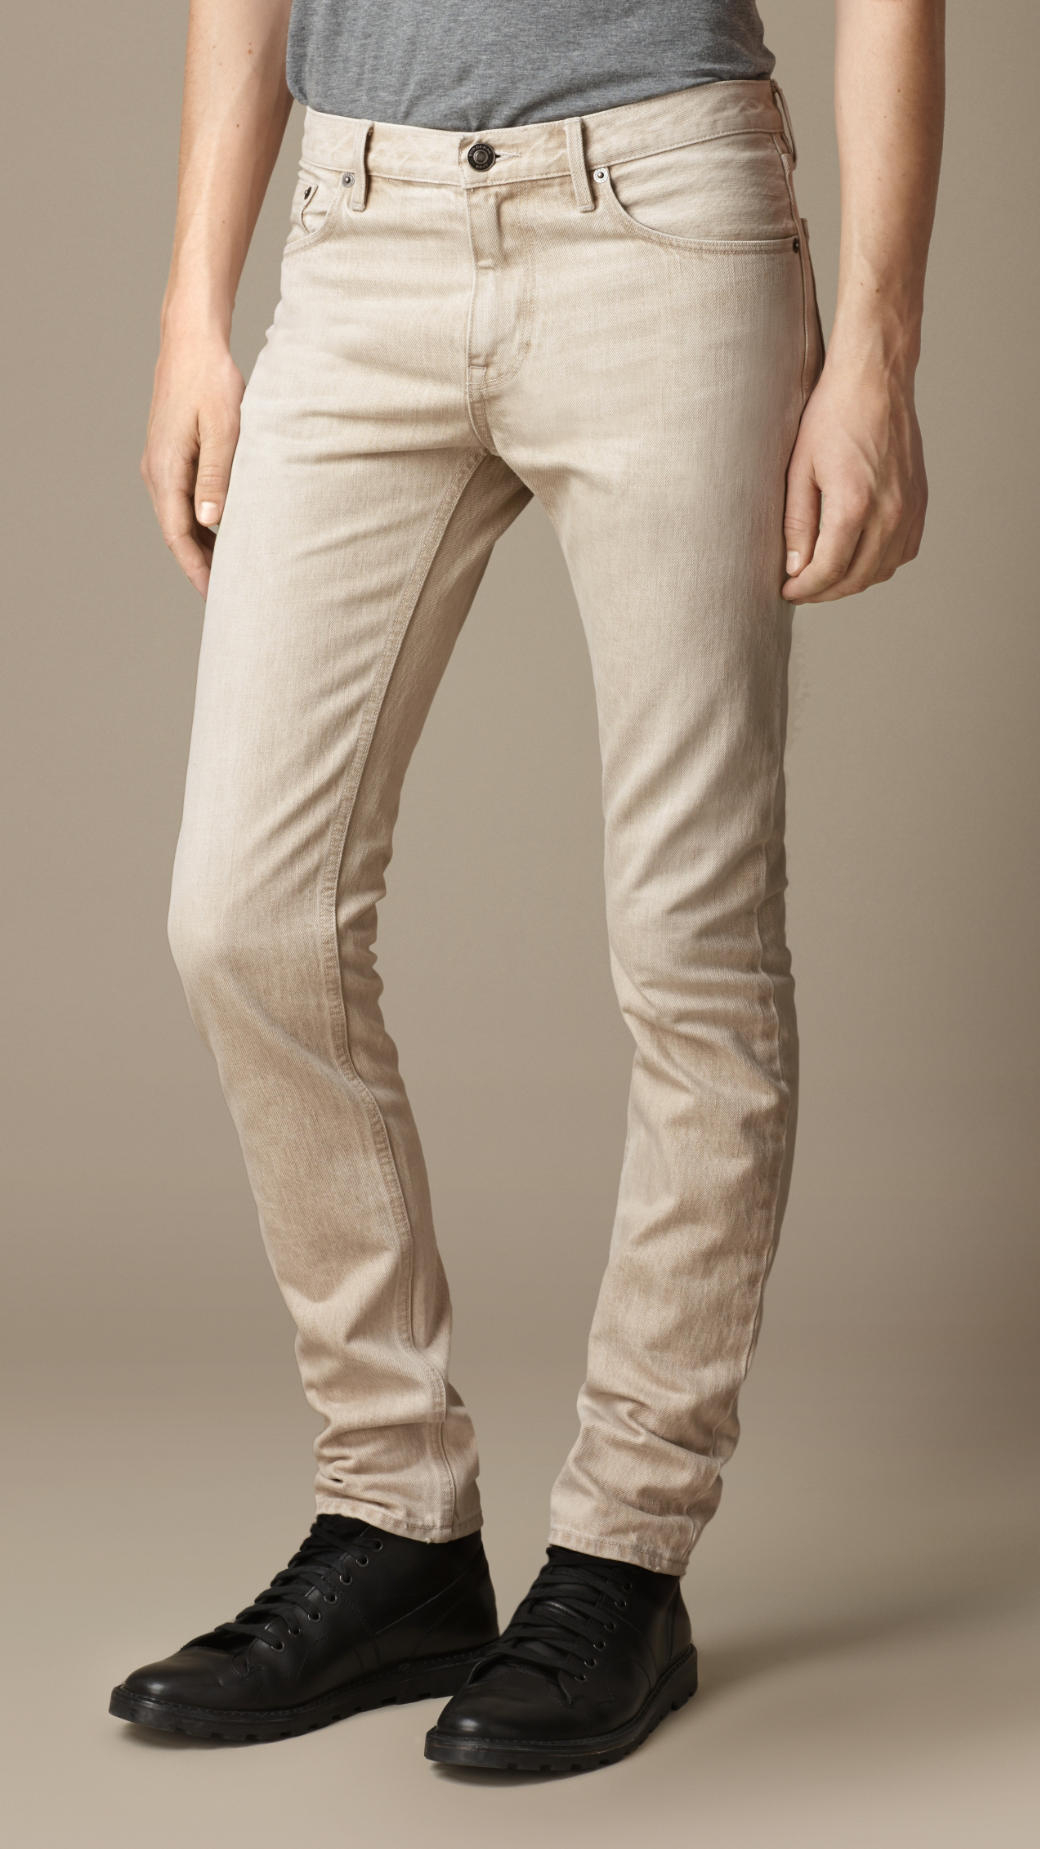 Find great deals on eBay for Mens Beige Jeans in Jeans for Men. Shop with confidence. Find great deals on eBay for Mens Beige Jeans in Jeans for Men. Shop with confidence. Mens CARBON Beige Skinny Jeans tag says 32 x 32 True Measurements 34 x $ Buy It Now. CARBON beige skinny jeans, in very good condition. 75% Cotton 22% Polyester.